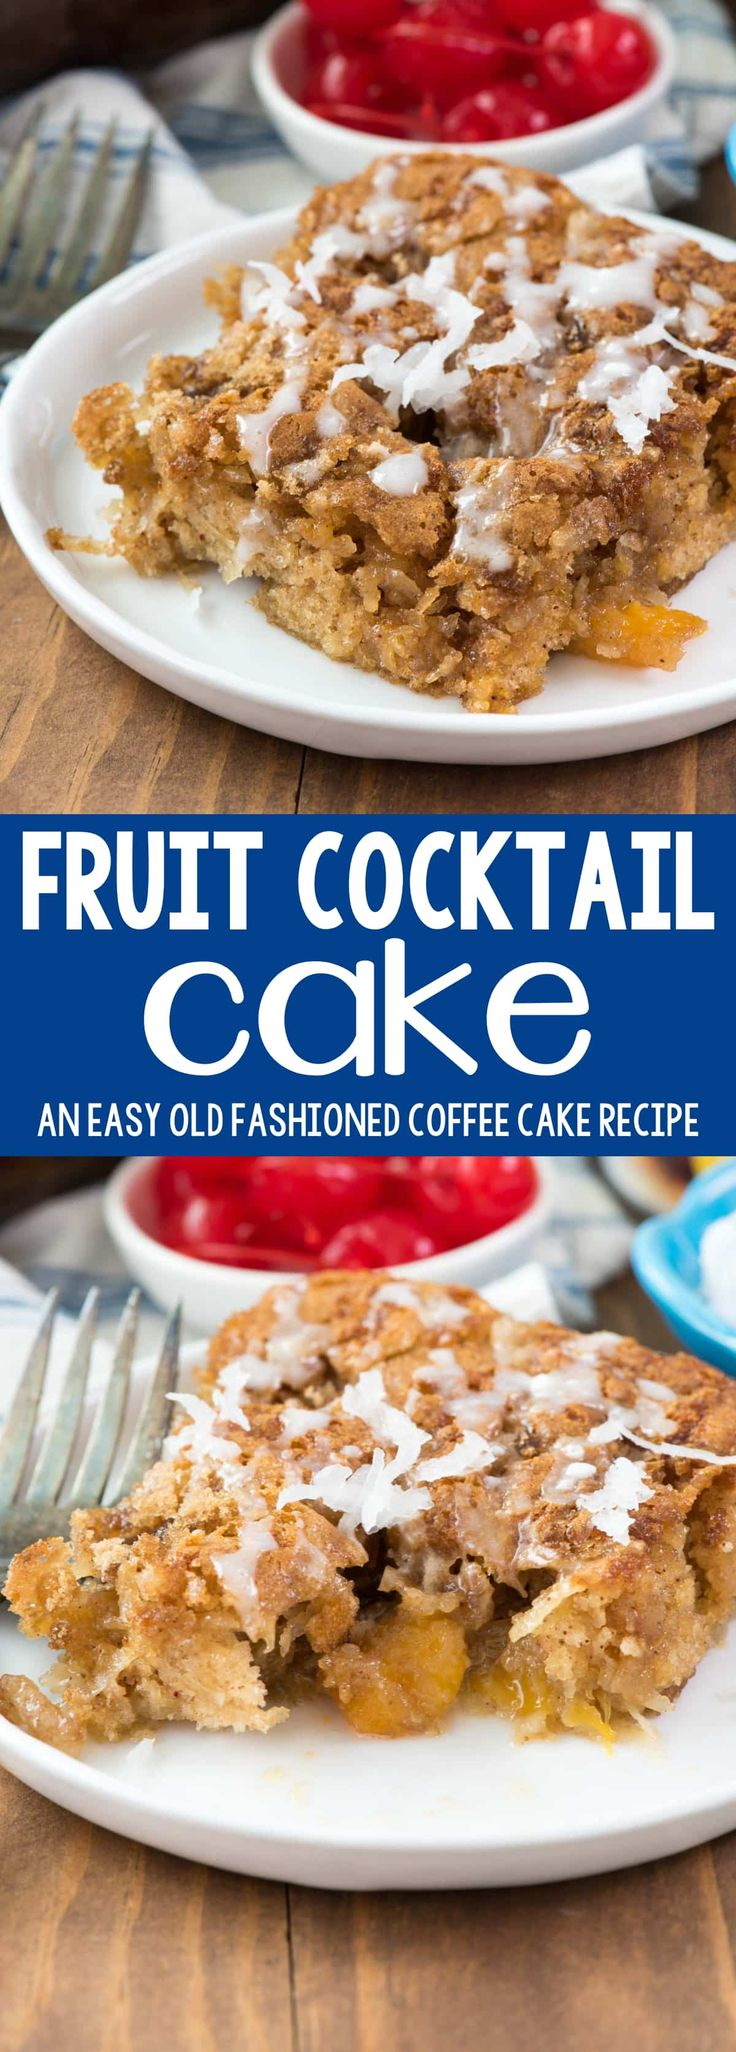 Fruit Cocktail Cake - this easy cake recipe is the perfect coffee cake for breakfast! It's full of coconut and fruit with no oil! This old fashioned recipe is the perfect way to use up canned fruit cocktail.